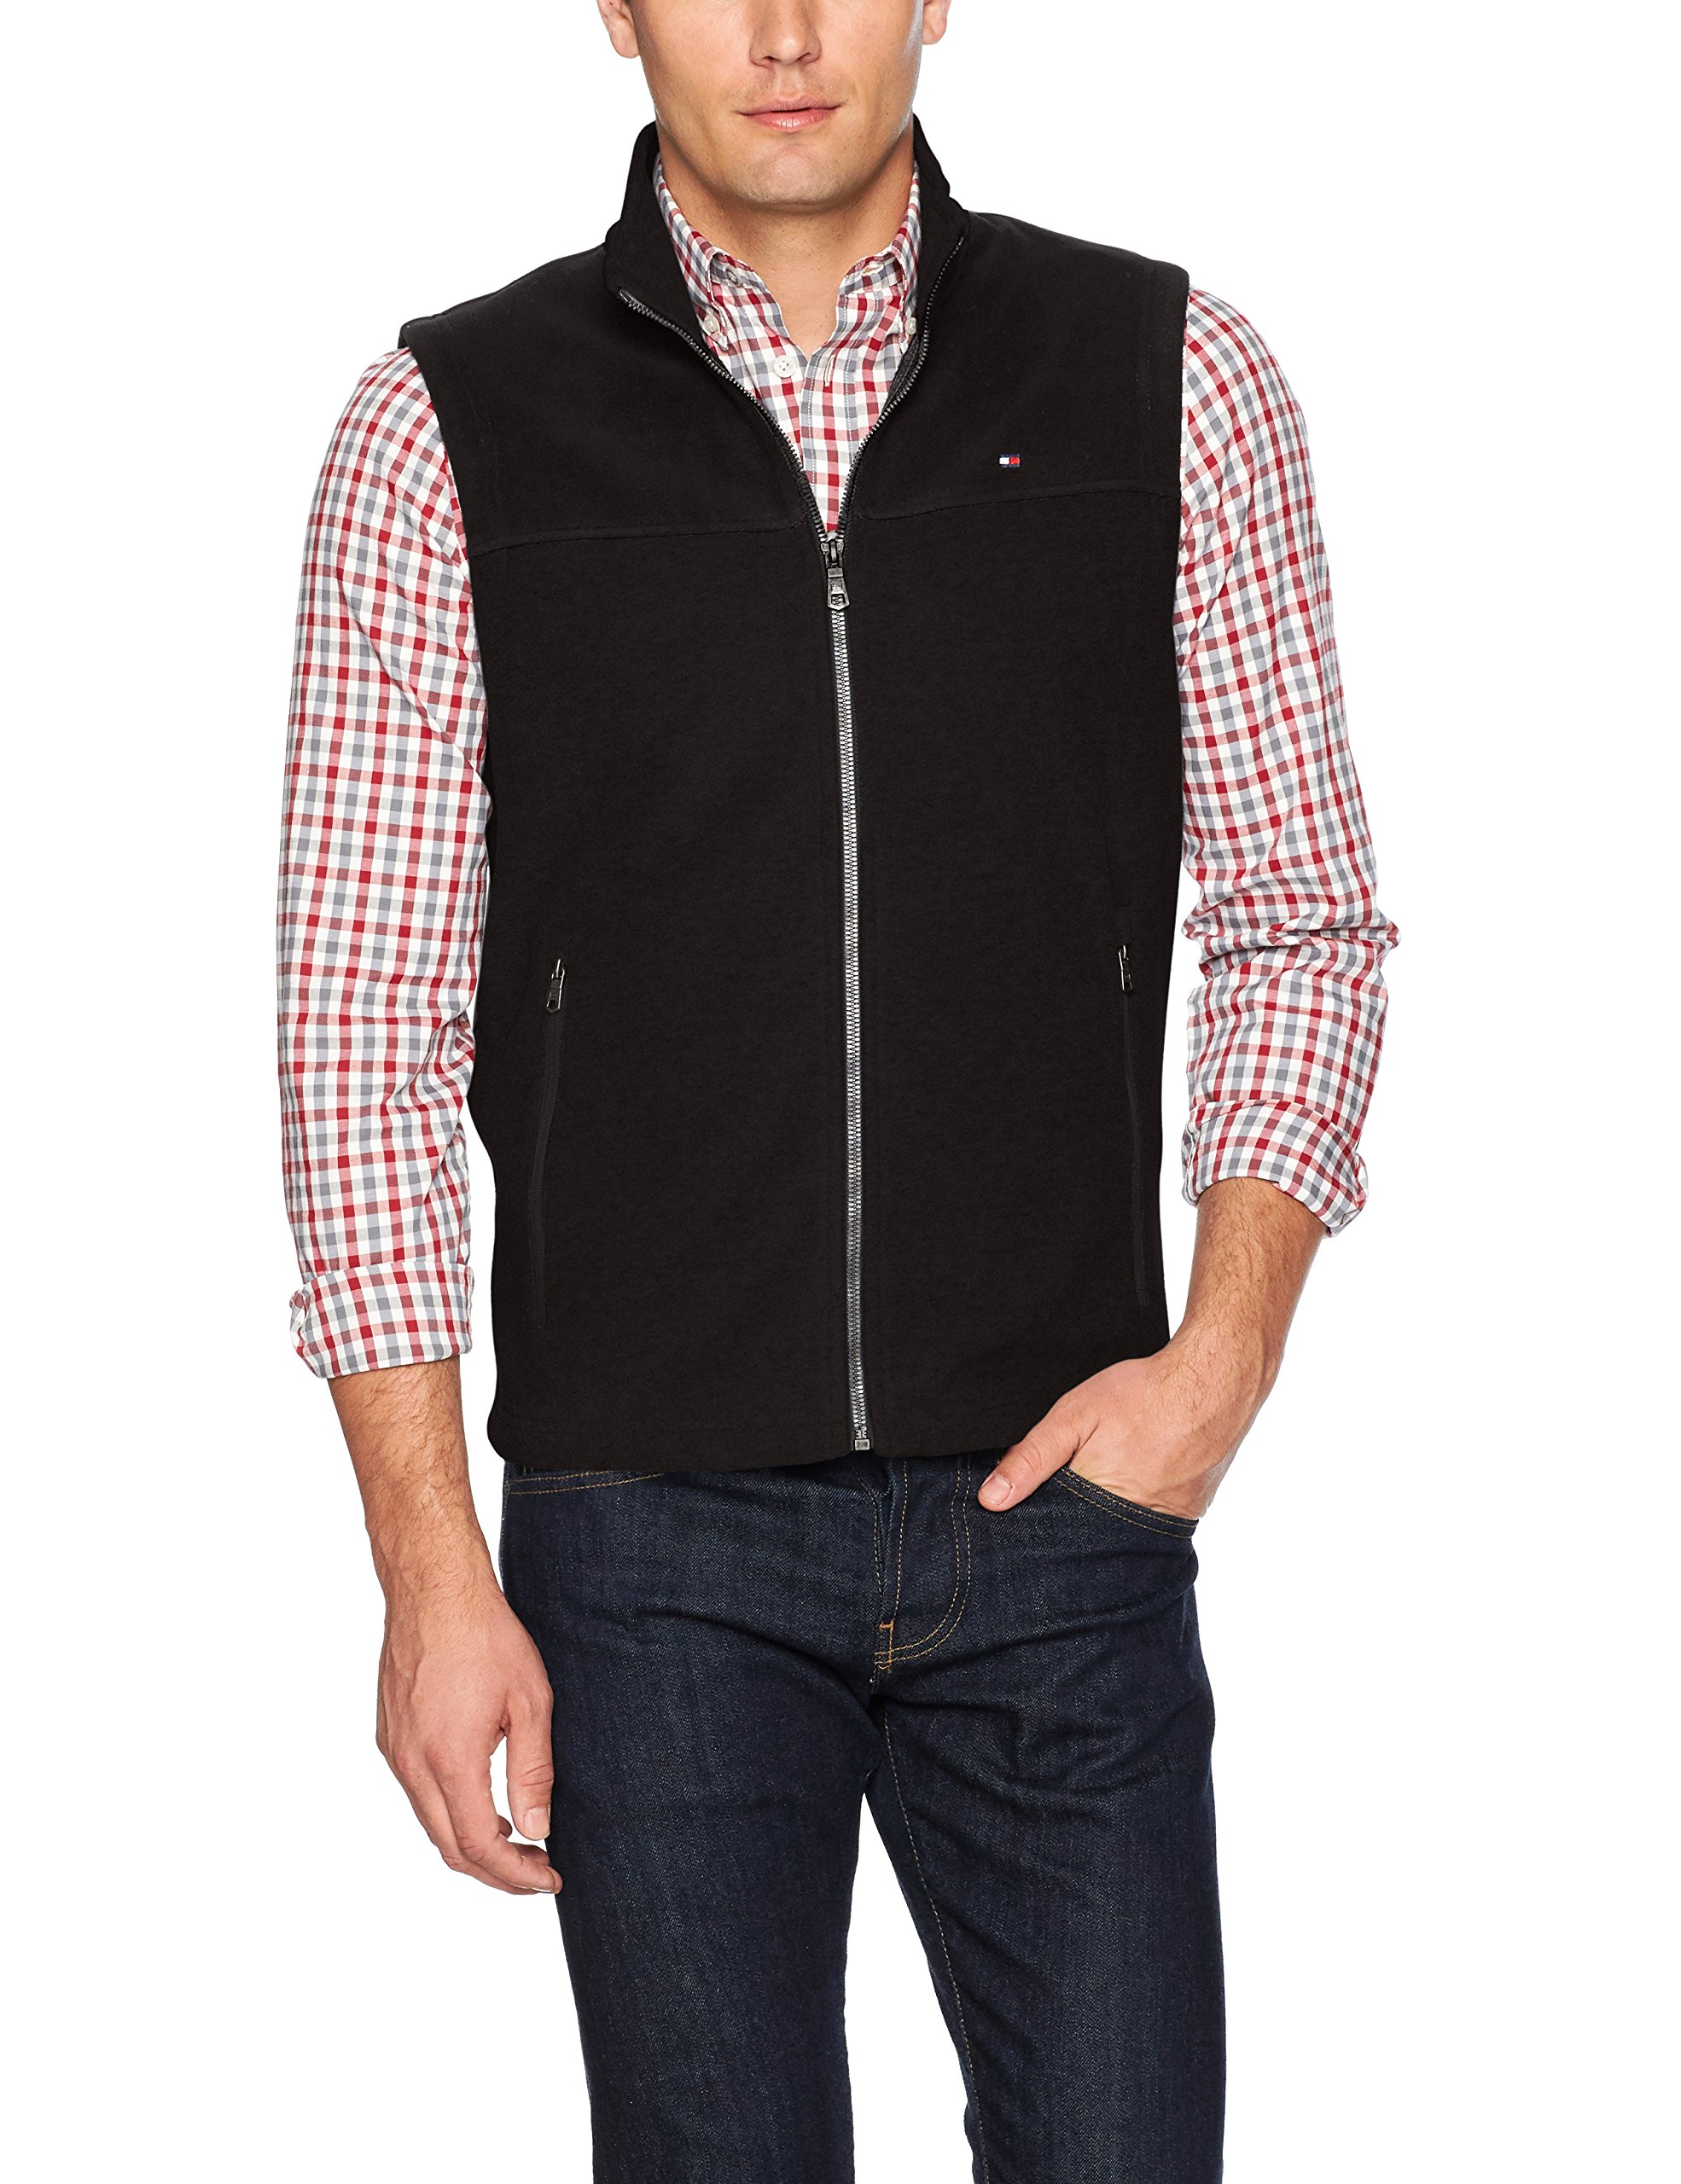 Tommy Hilfiger Men's Polar Fleece Vest, Black, Medium by Tommy Hilfiger